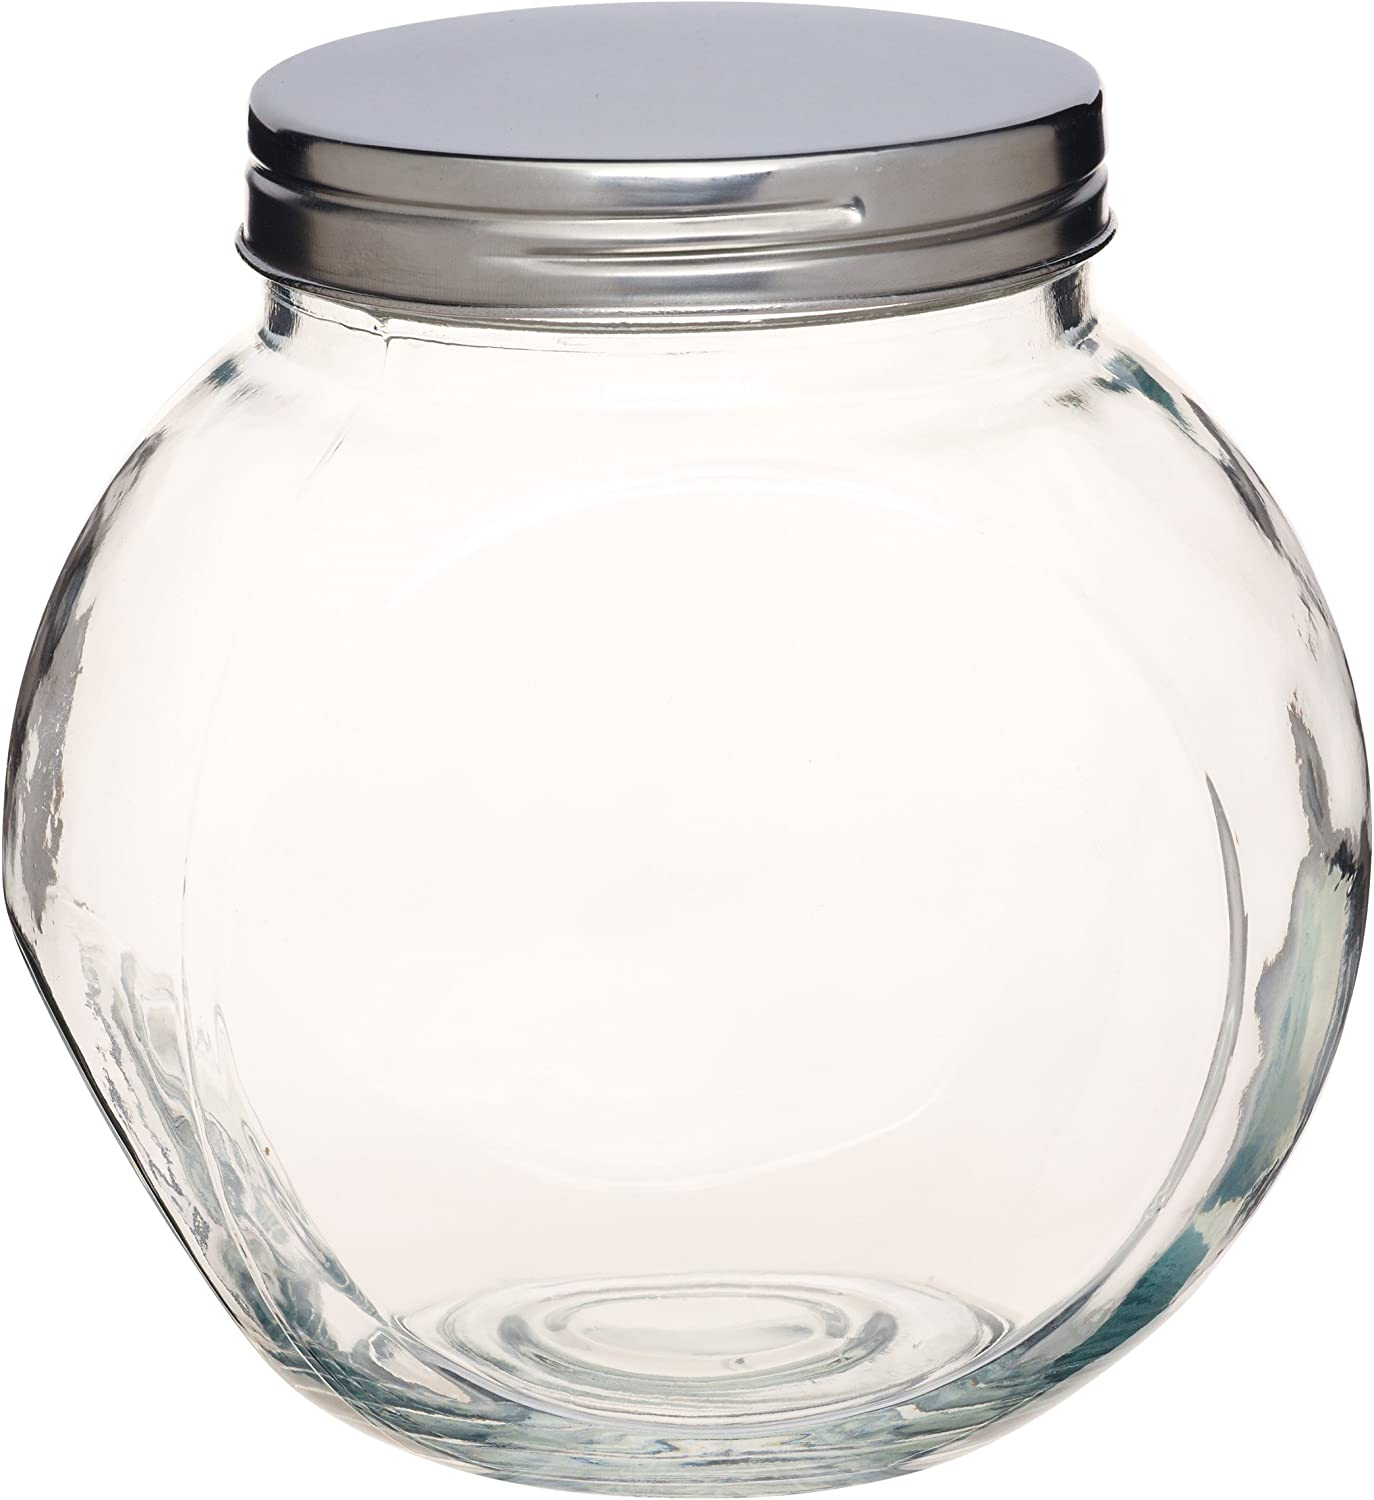 Kitchencraft Home Made Glass Storage Jar With Lid Tilt Or Tall 14 L